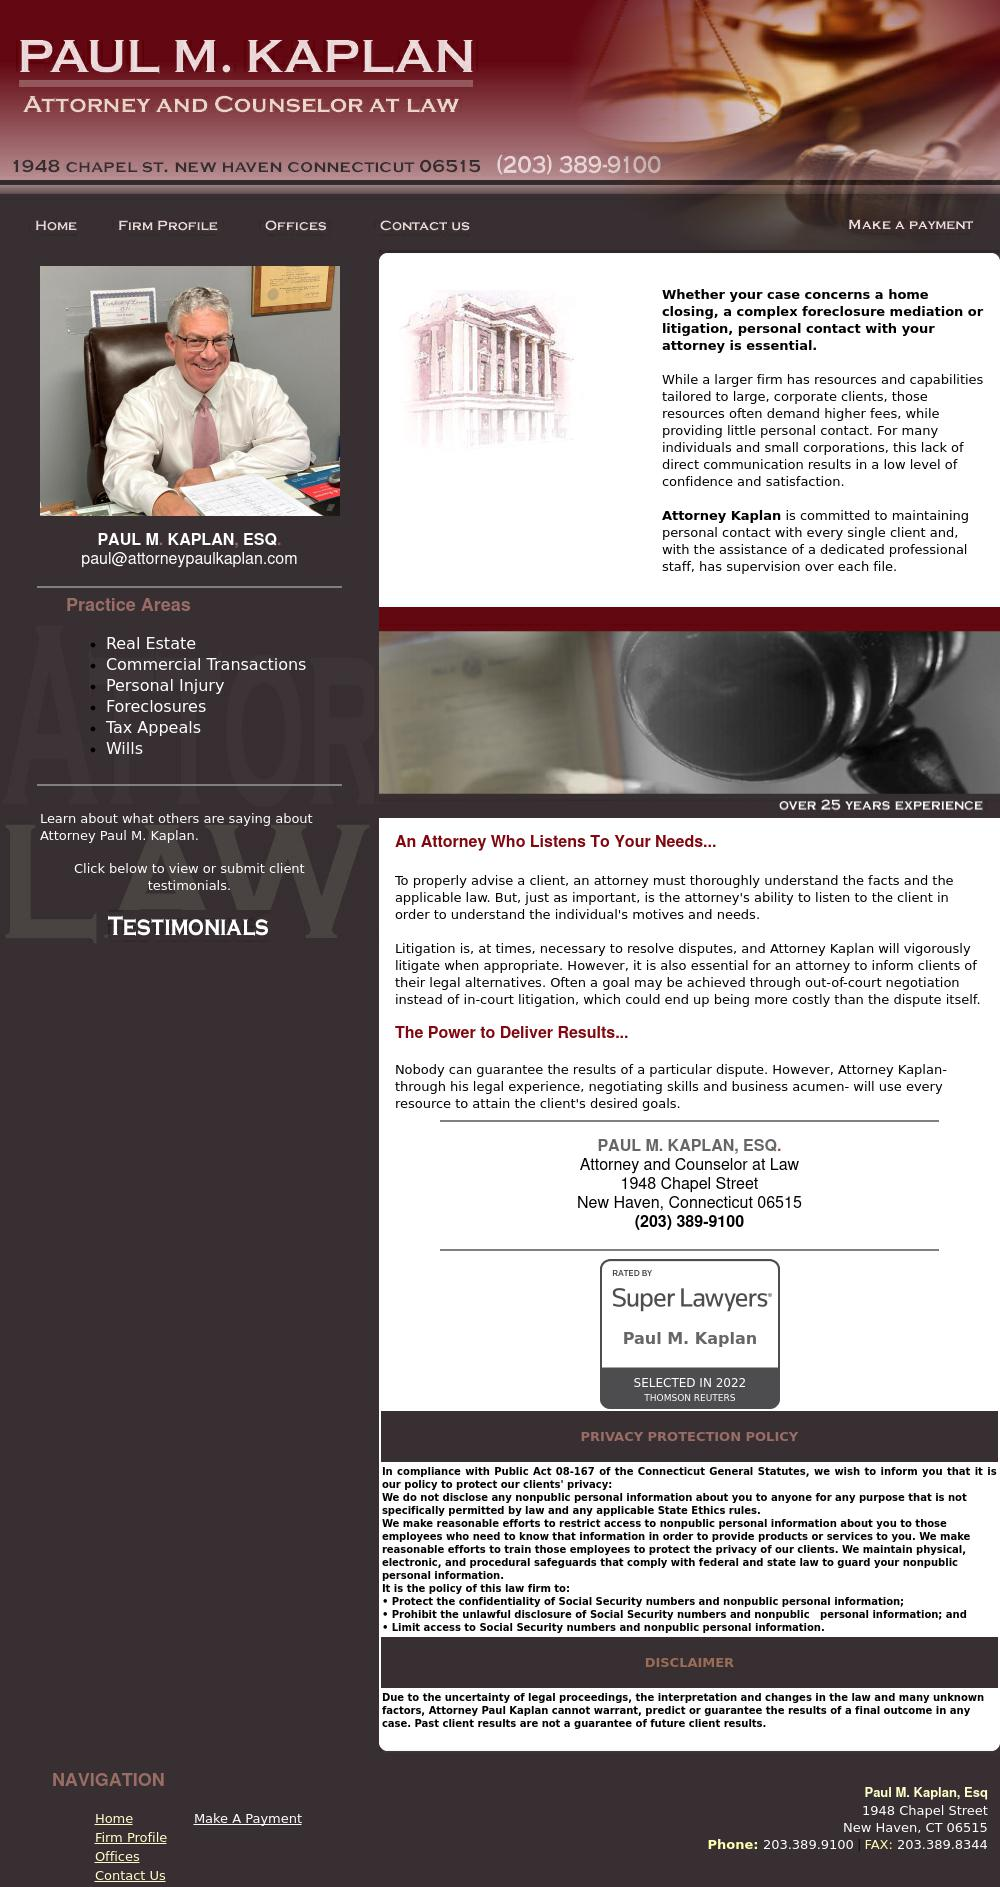 Paul M. Kaplan, Esq. - New Haven CT Lawyers